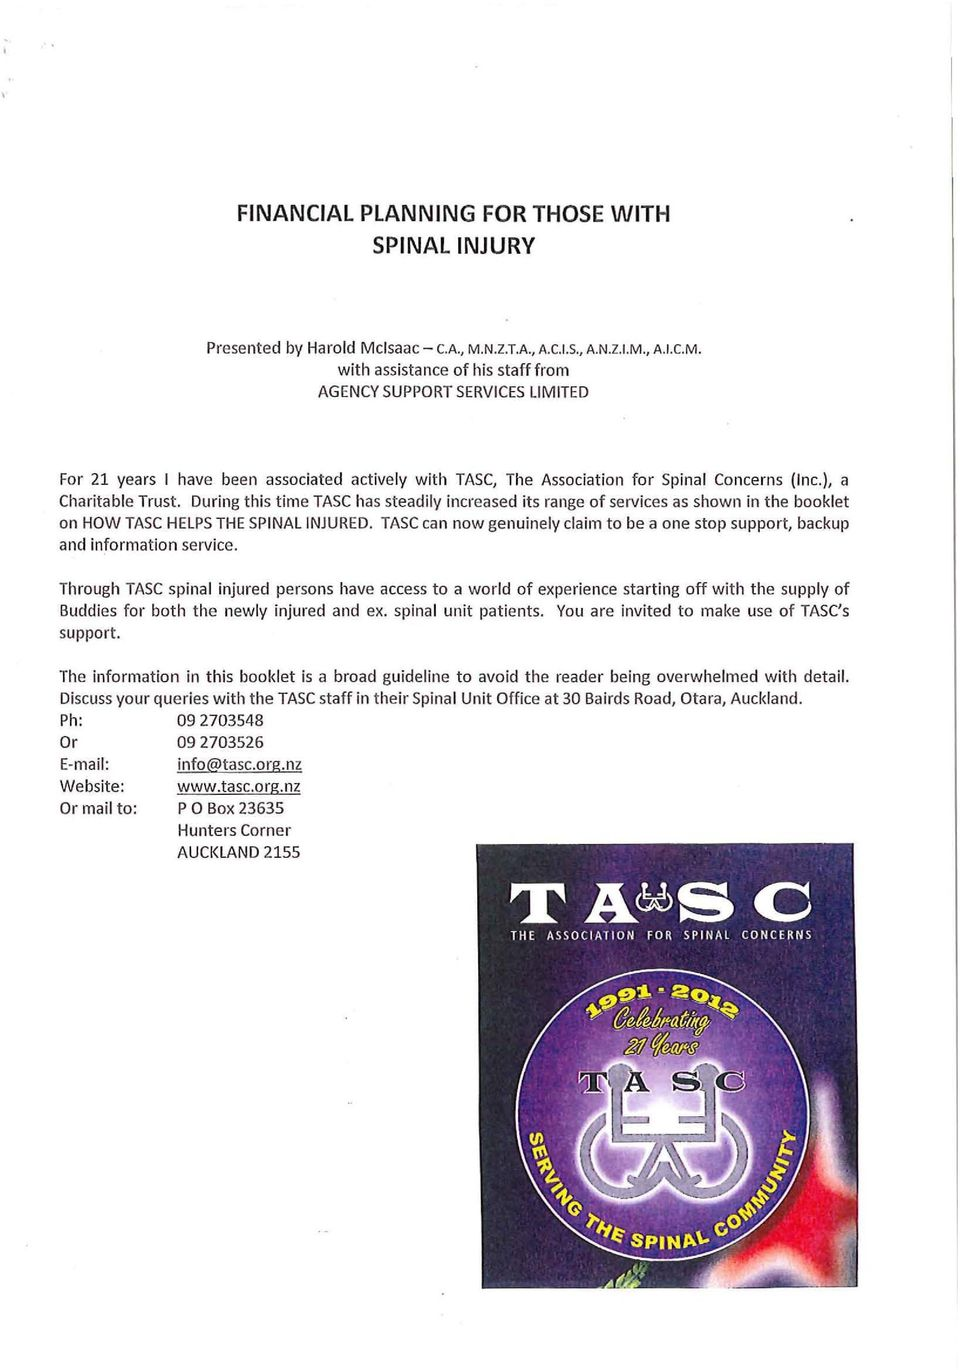 ), a Charitable Trust. During this time TASC has steadily increased its range of services as shown in the booklet on HOW TASC HELPS THE SPINAL INJURED.